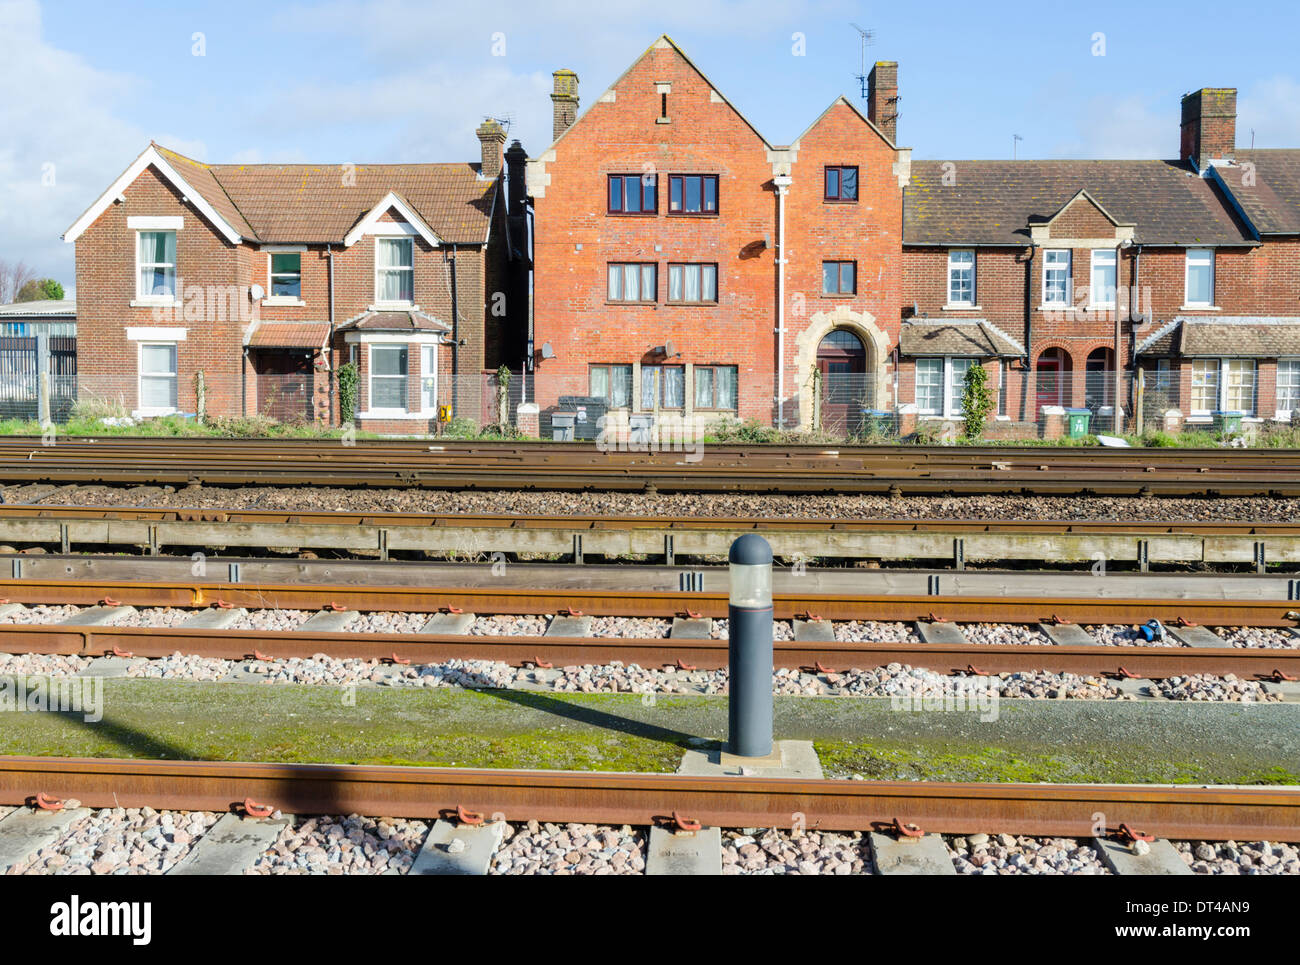 Railway track going past housing in an urban area in the UK. - Stock Image